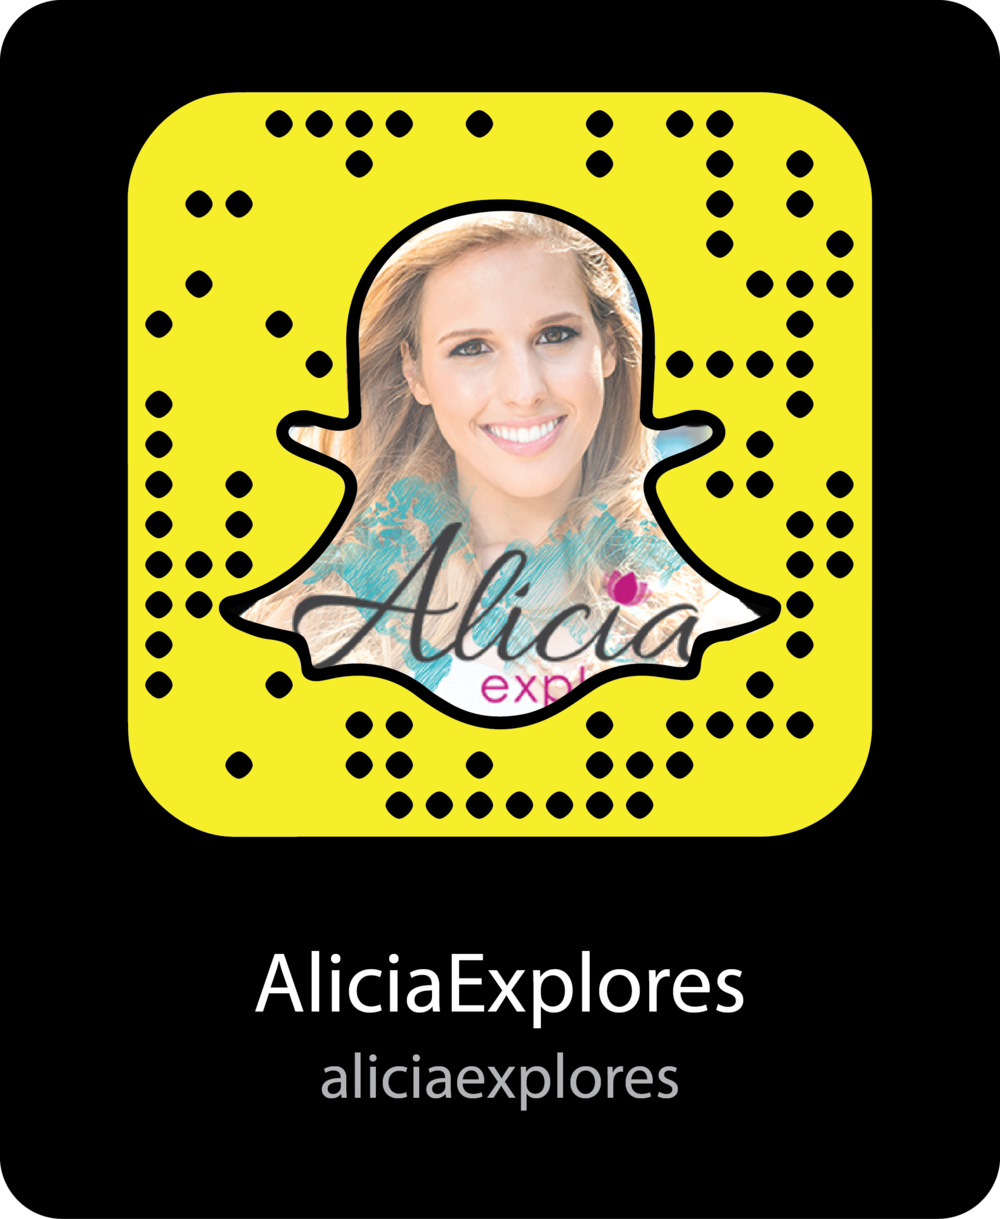 AliciaExplores-Travel-snapchat-snapcode.png